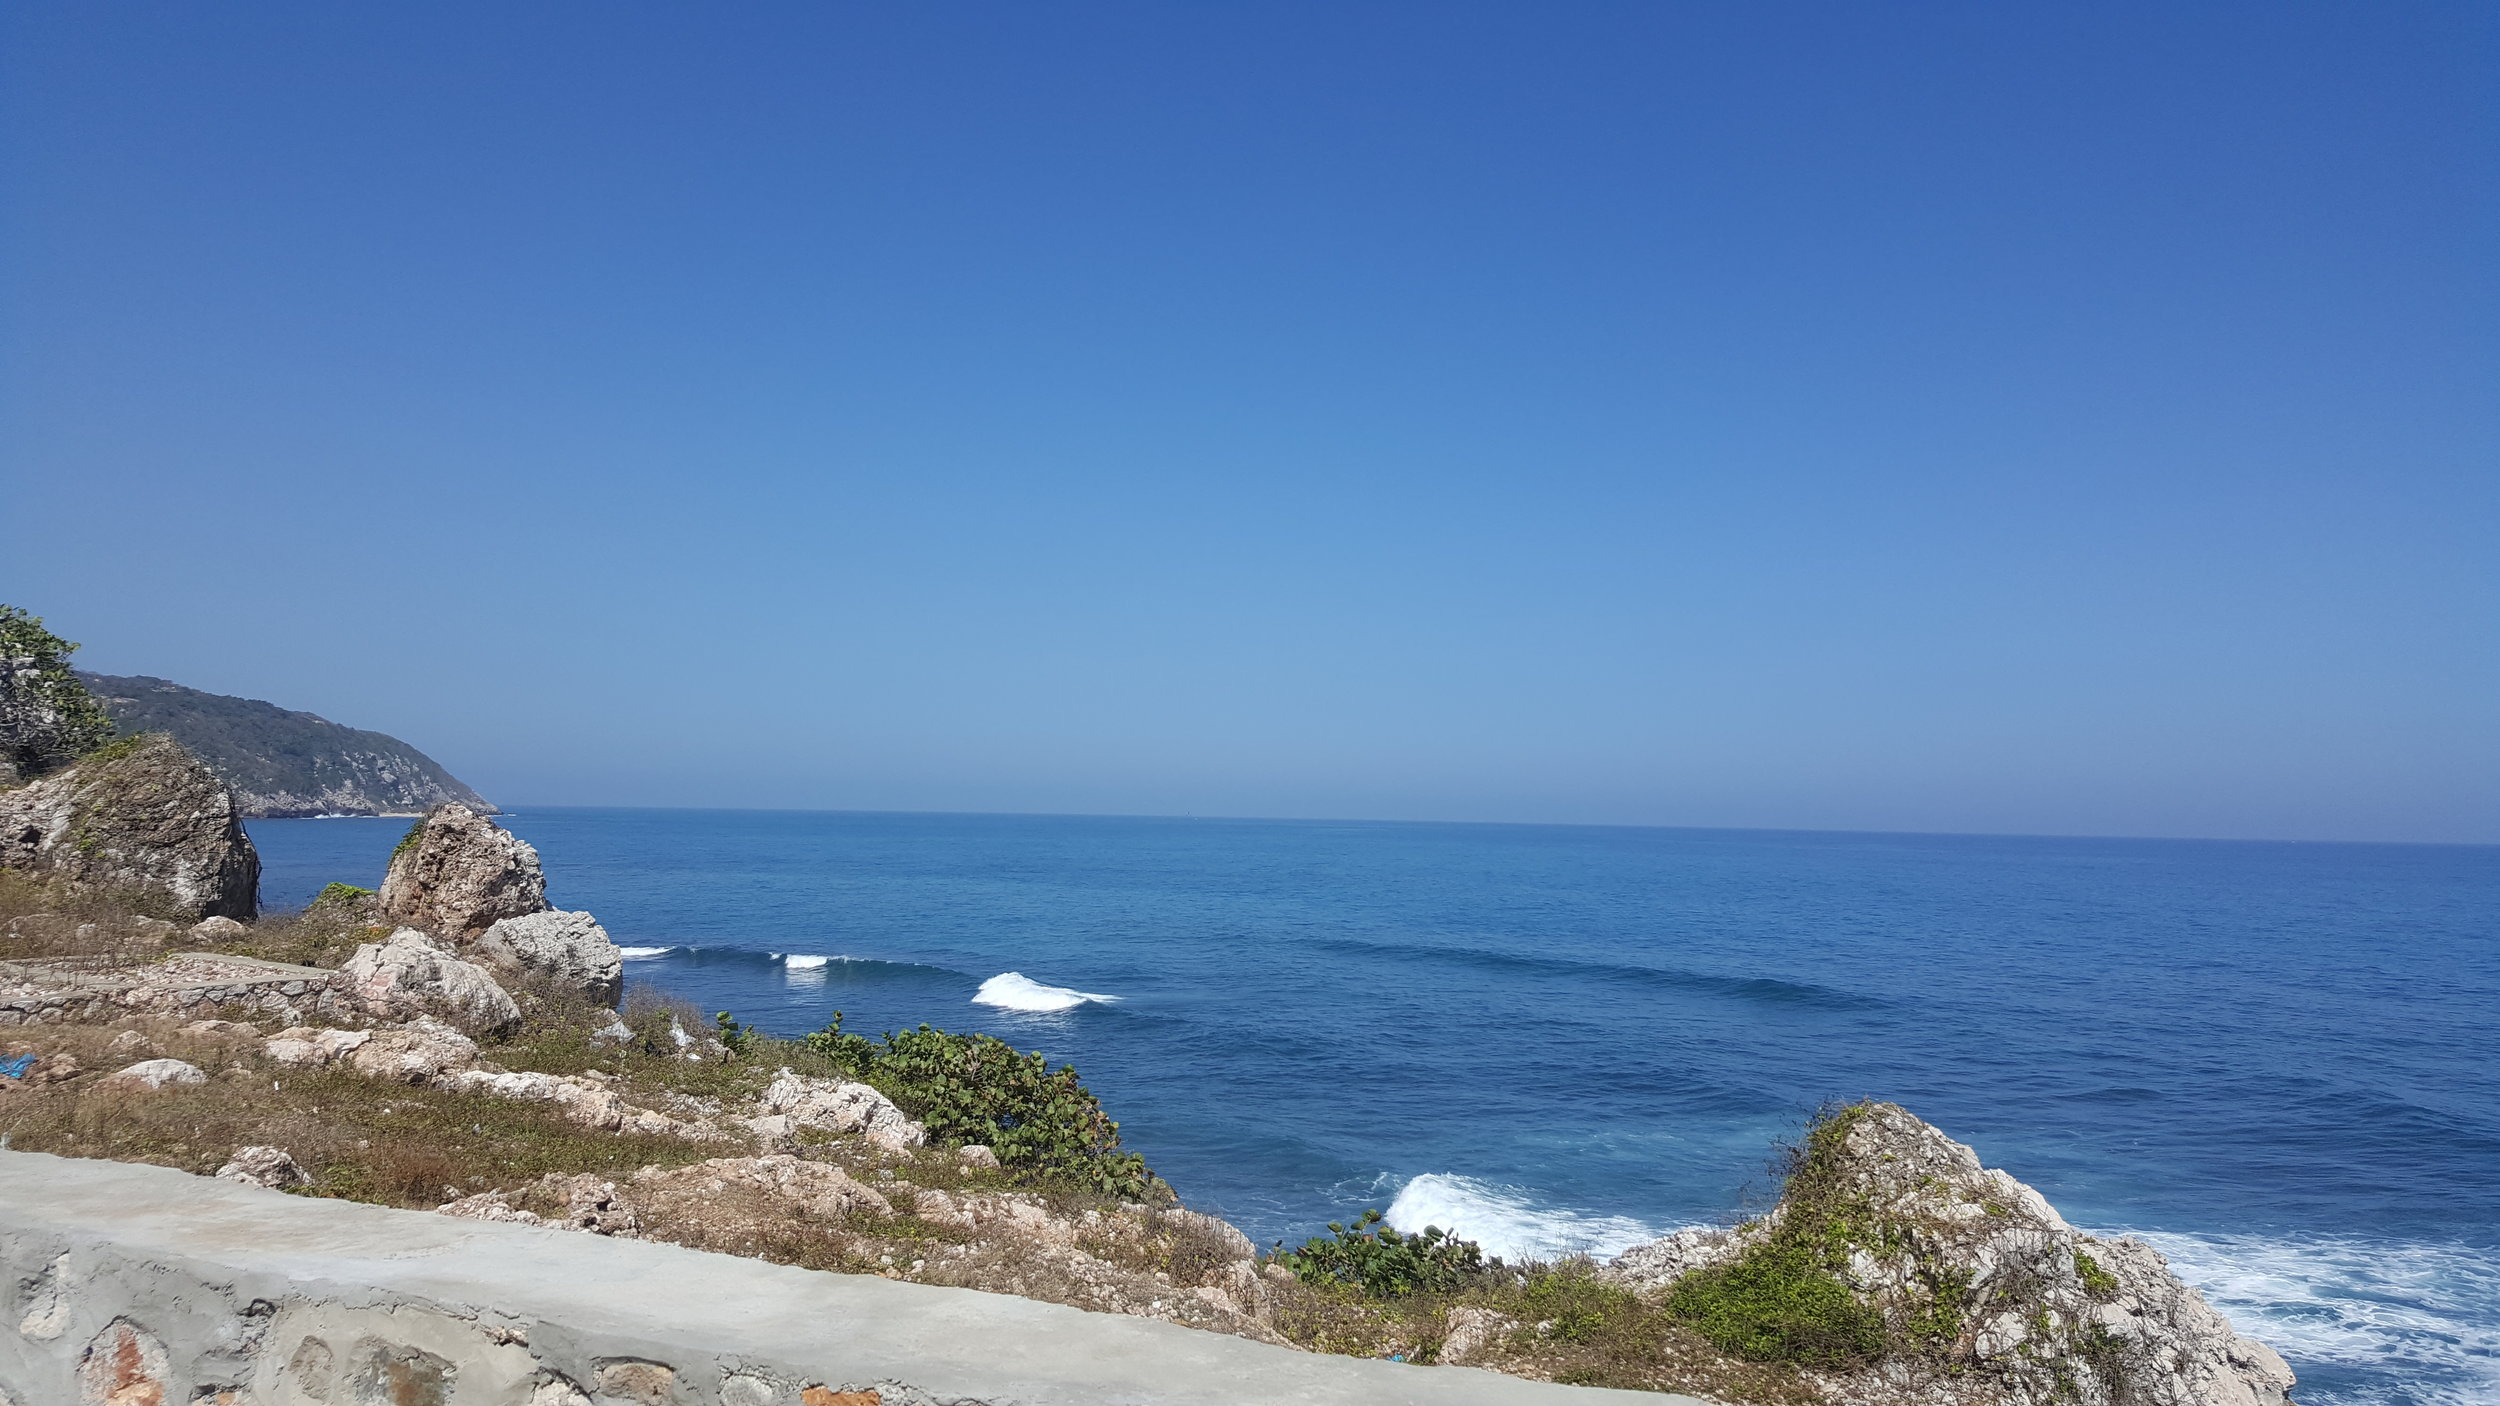 View of the ocean on the other side